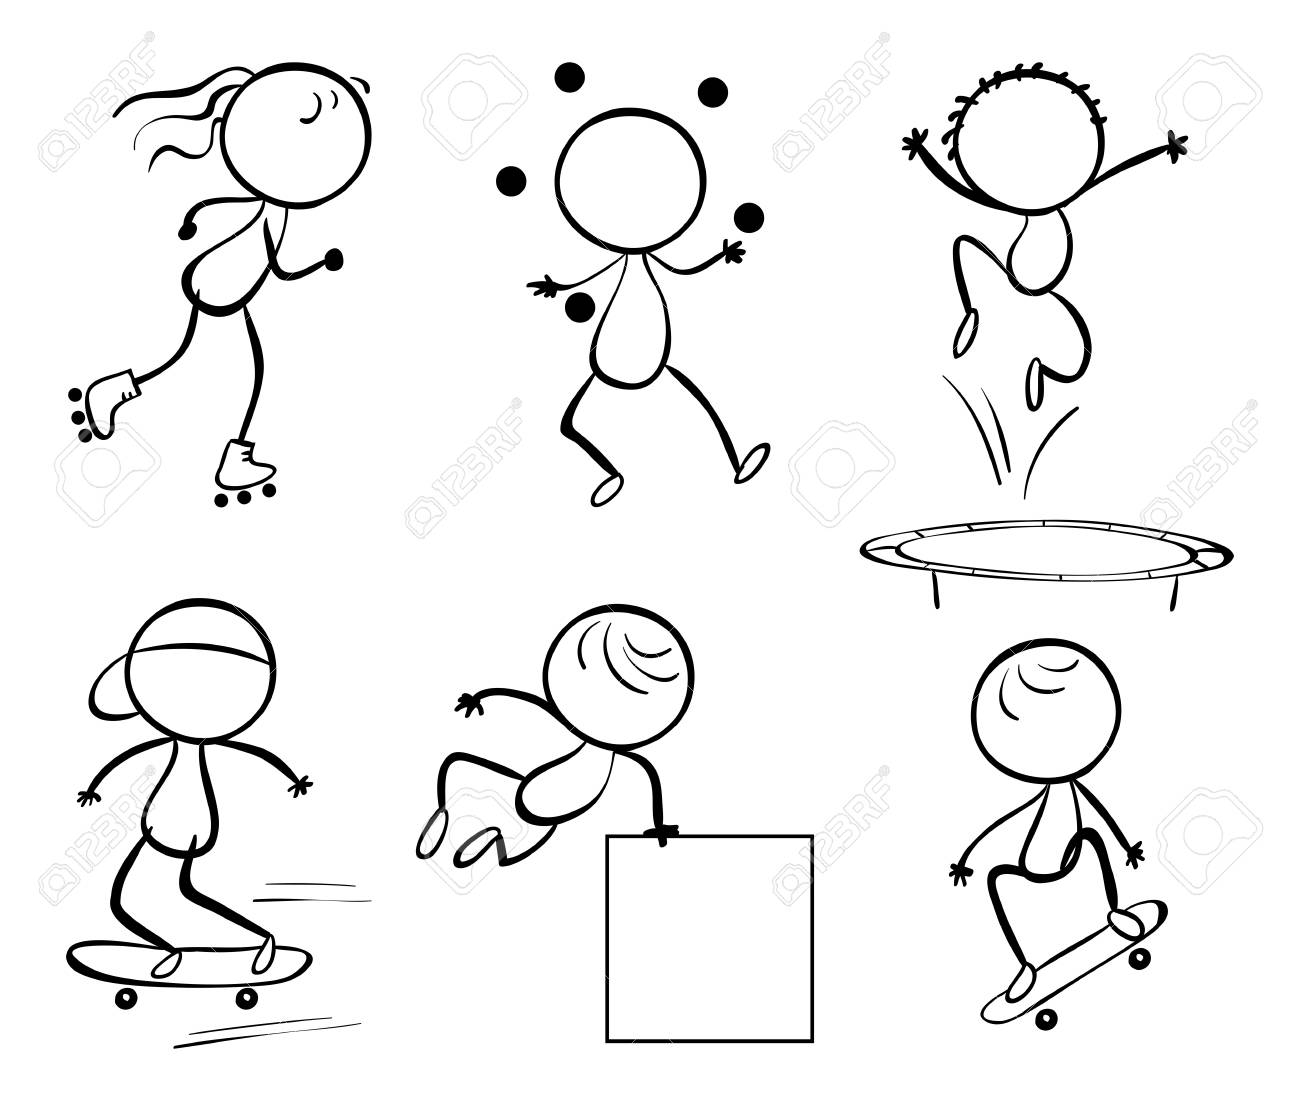 Illustration of the silhouettes of the different activities on a white background Stock Vector - 19645146